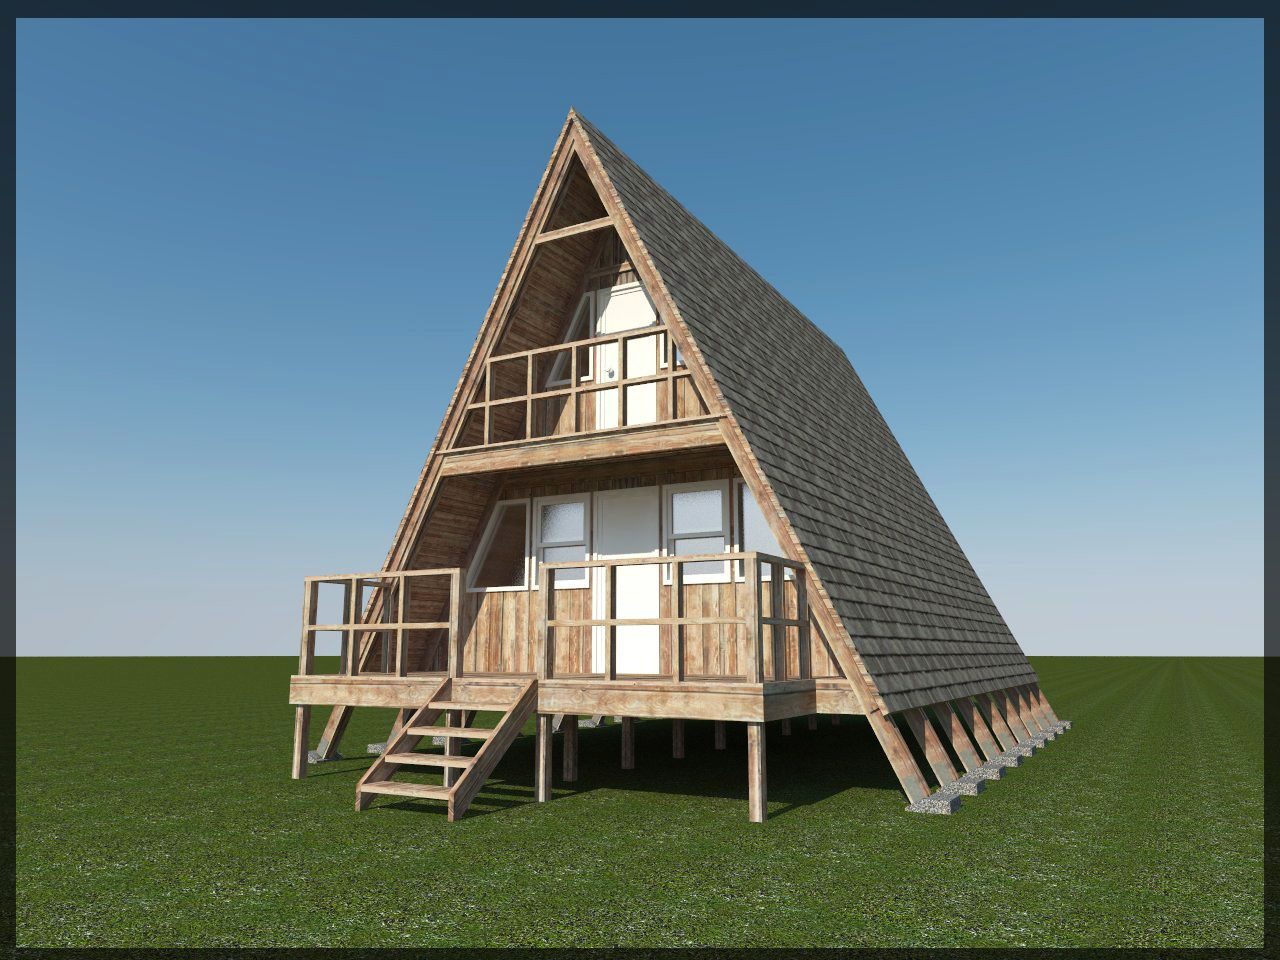 Build Your Own 24 X 21 A Frame 2 Story Cabin Diy Plans Fun To Build Save A Frame Cabin Plans A Frame House Plans Building A Cabin